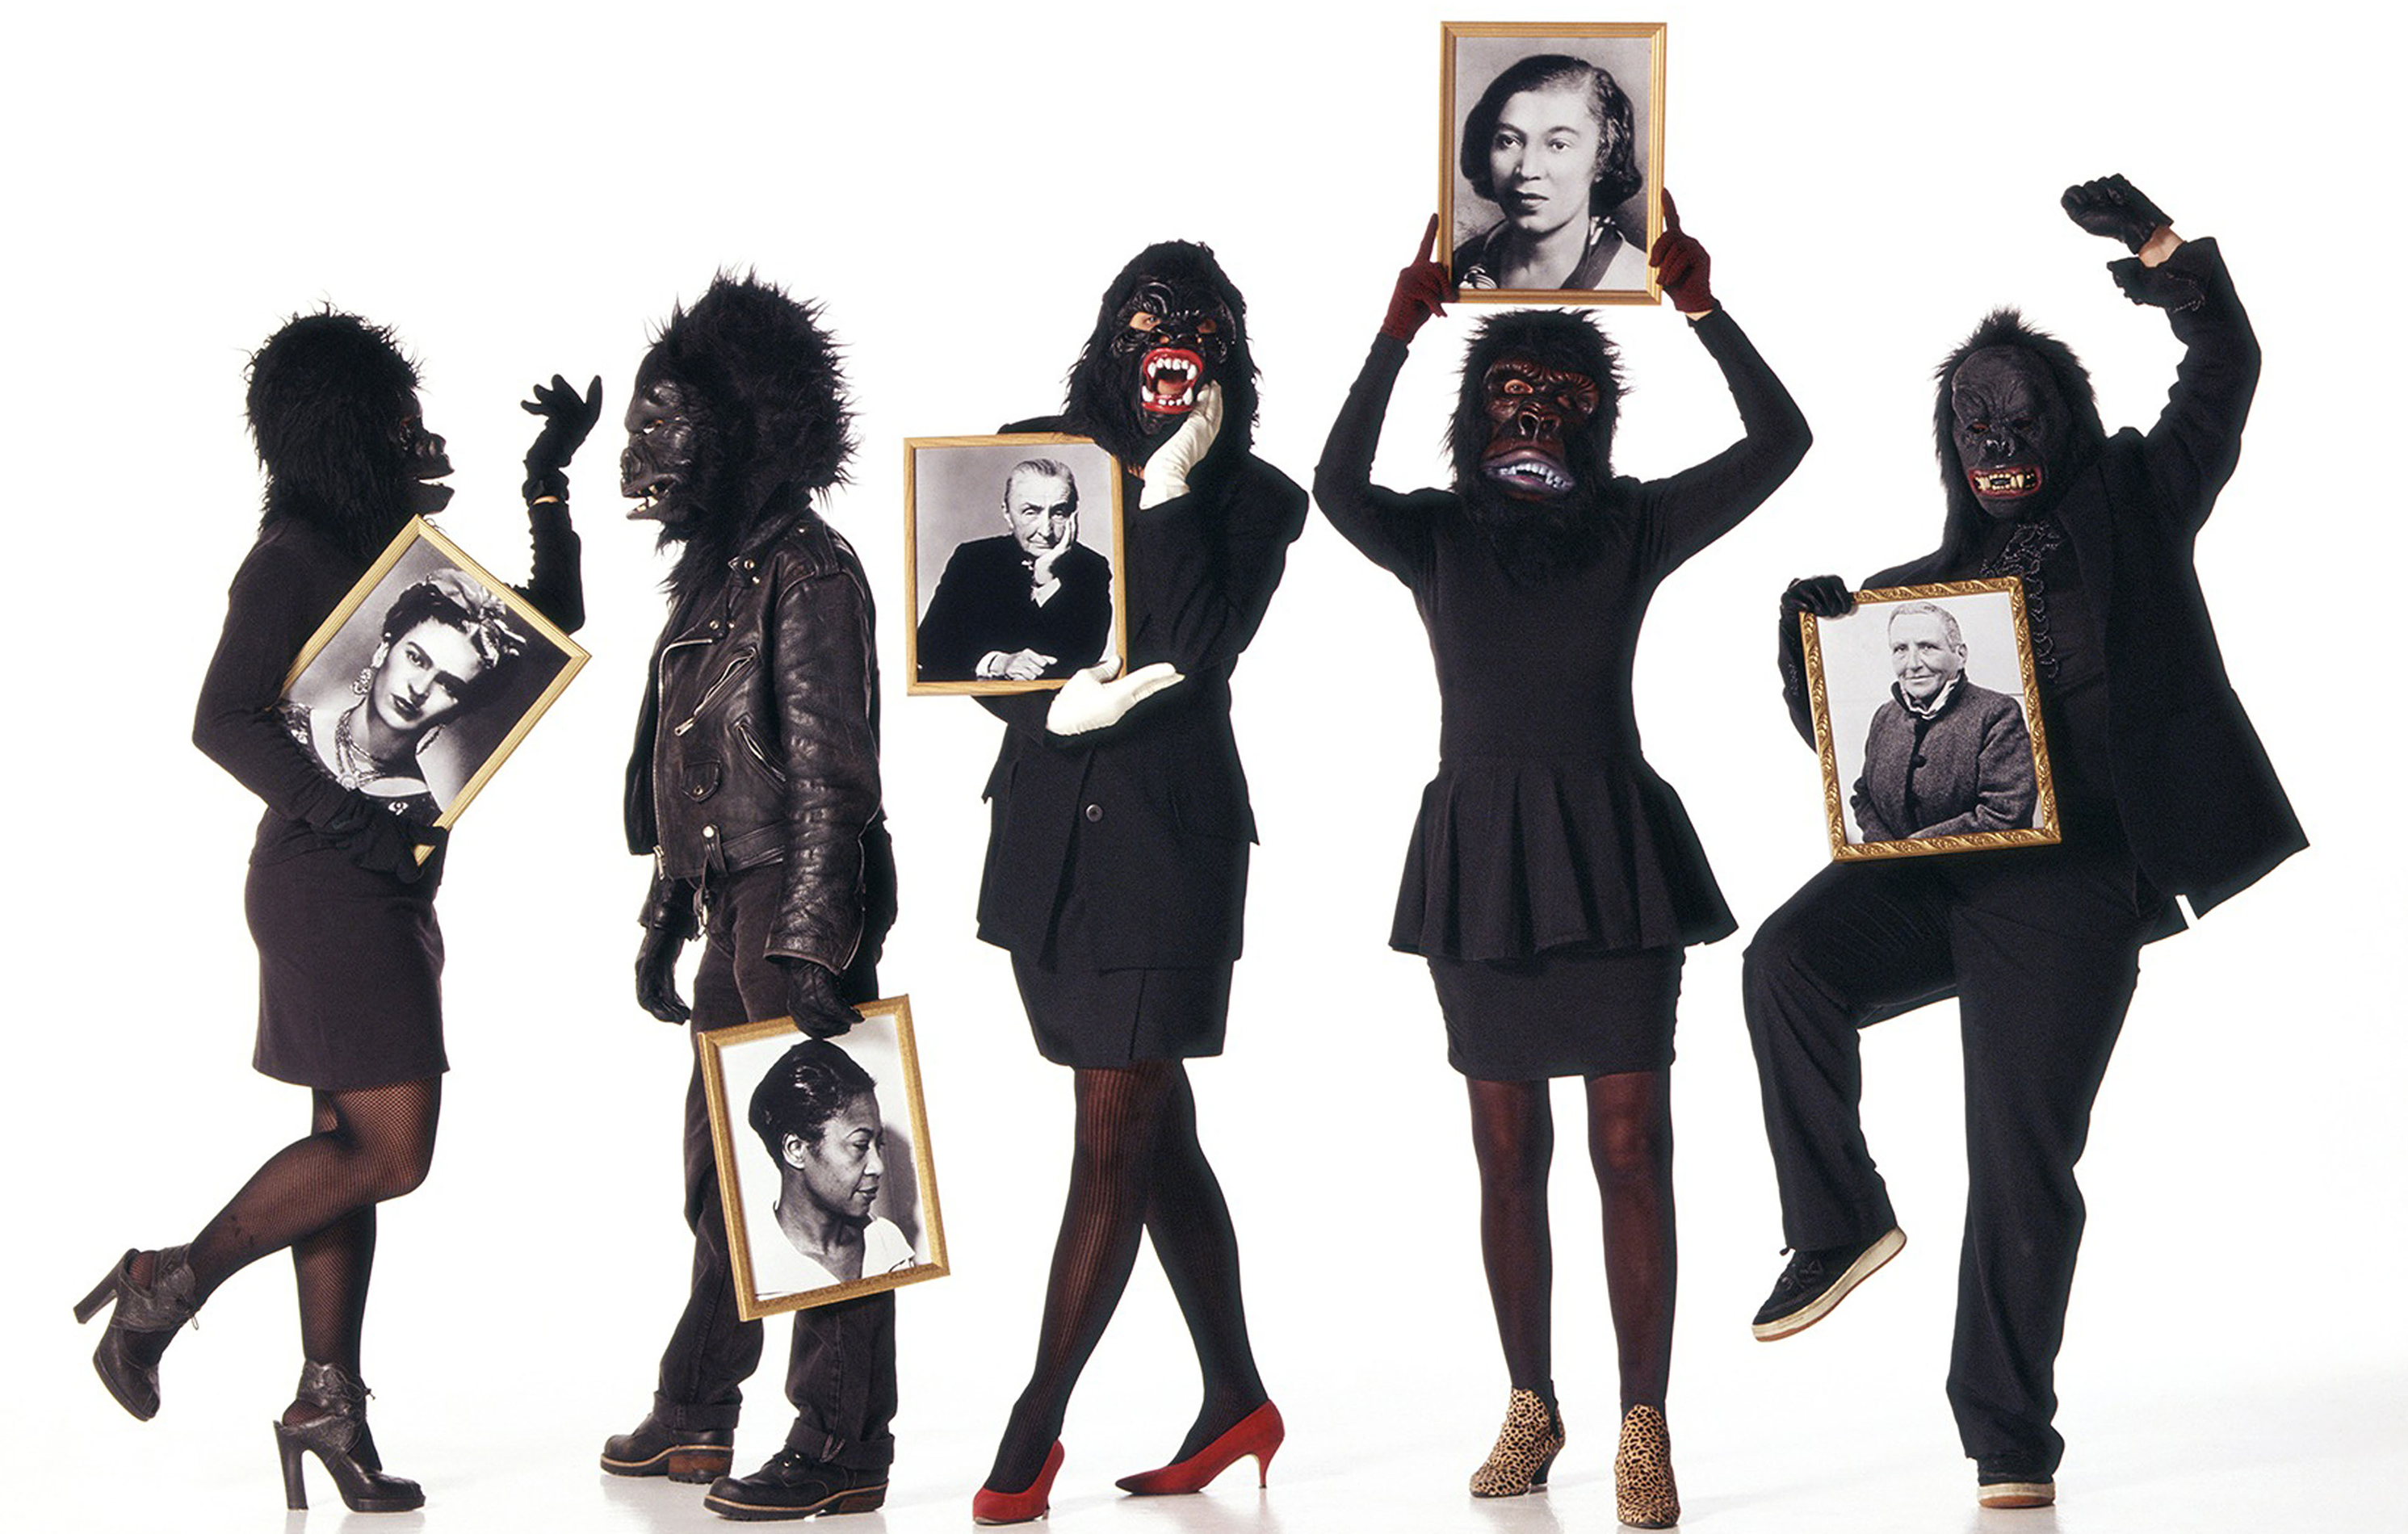 1996_GuerrillaGirls_NYT©LoisGreenfield_3000at300dpi (2)